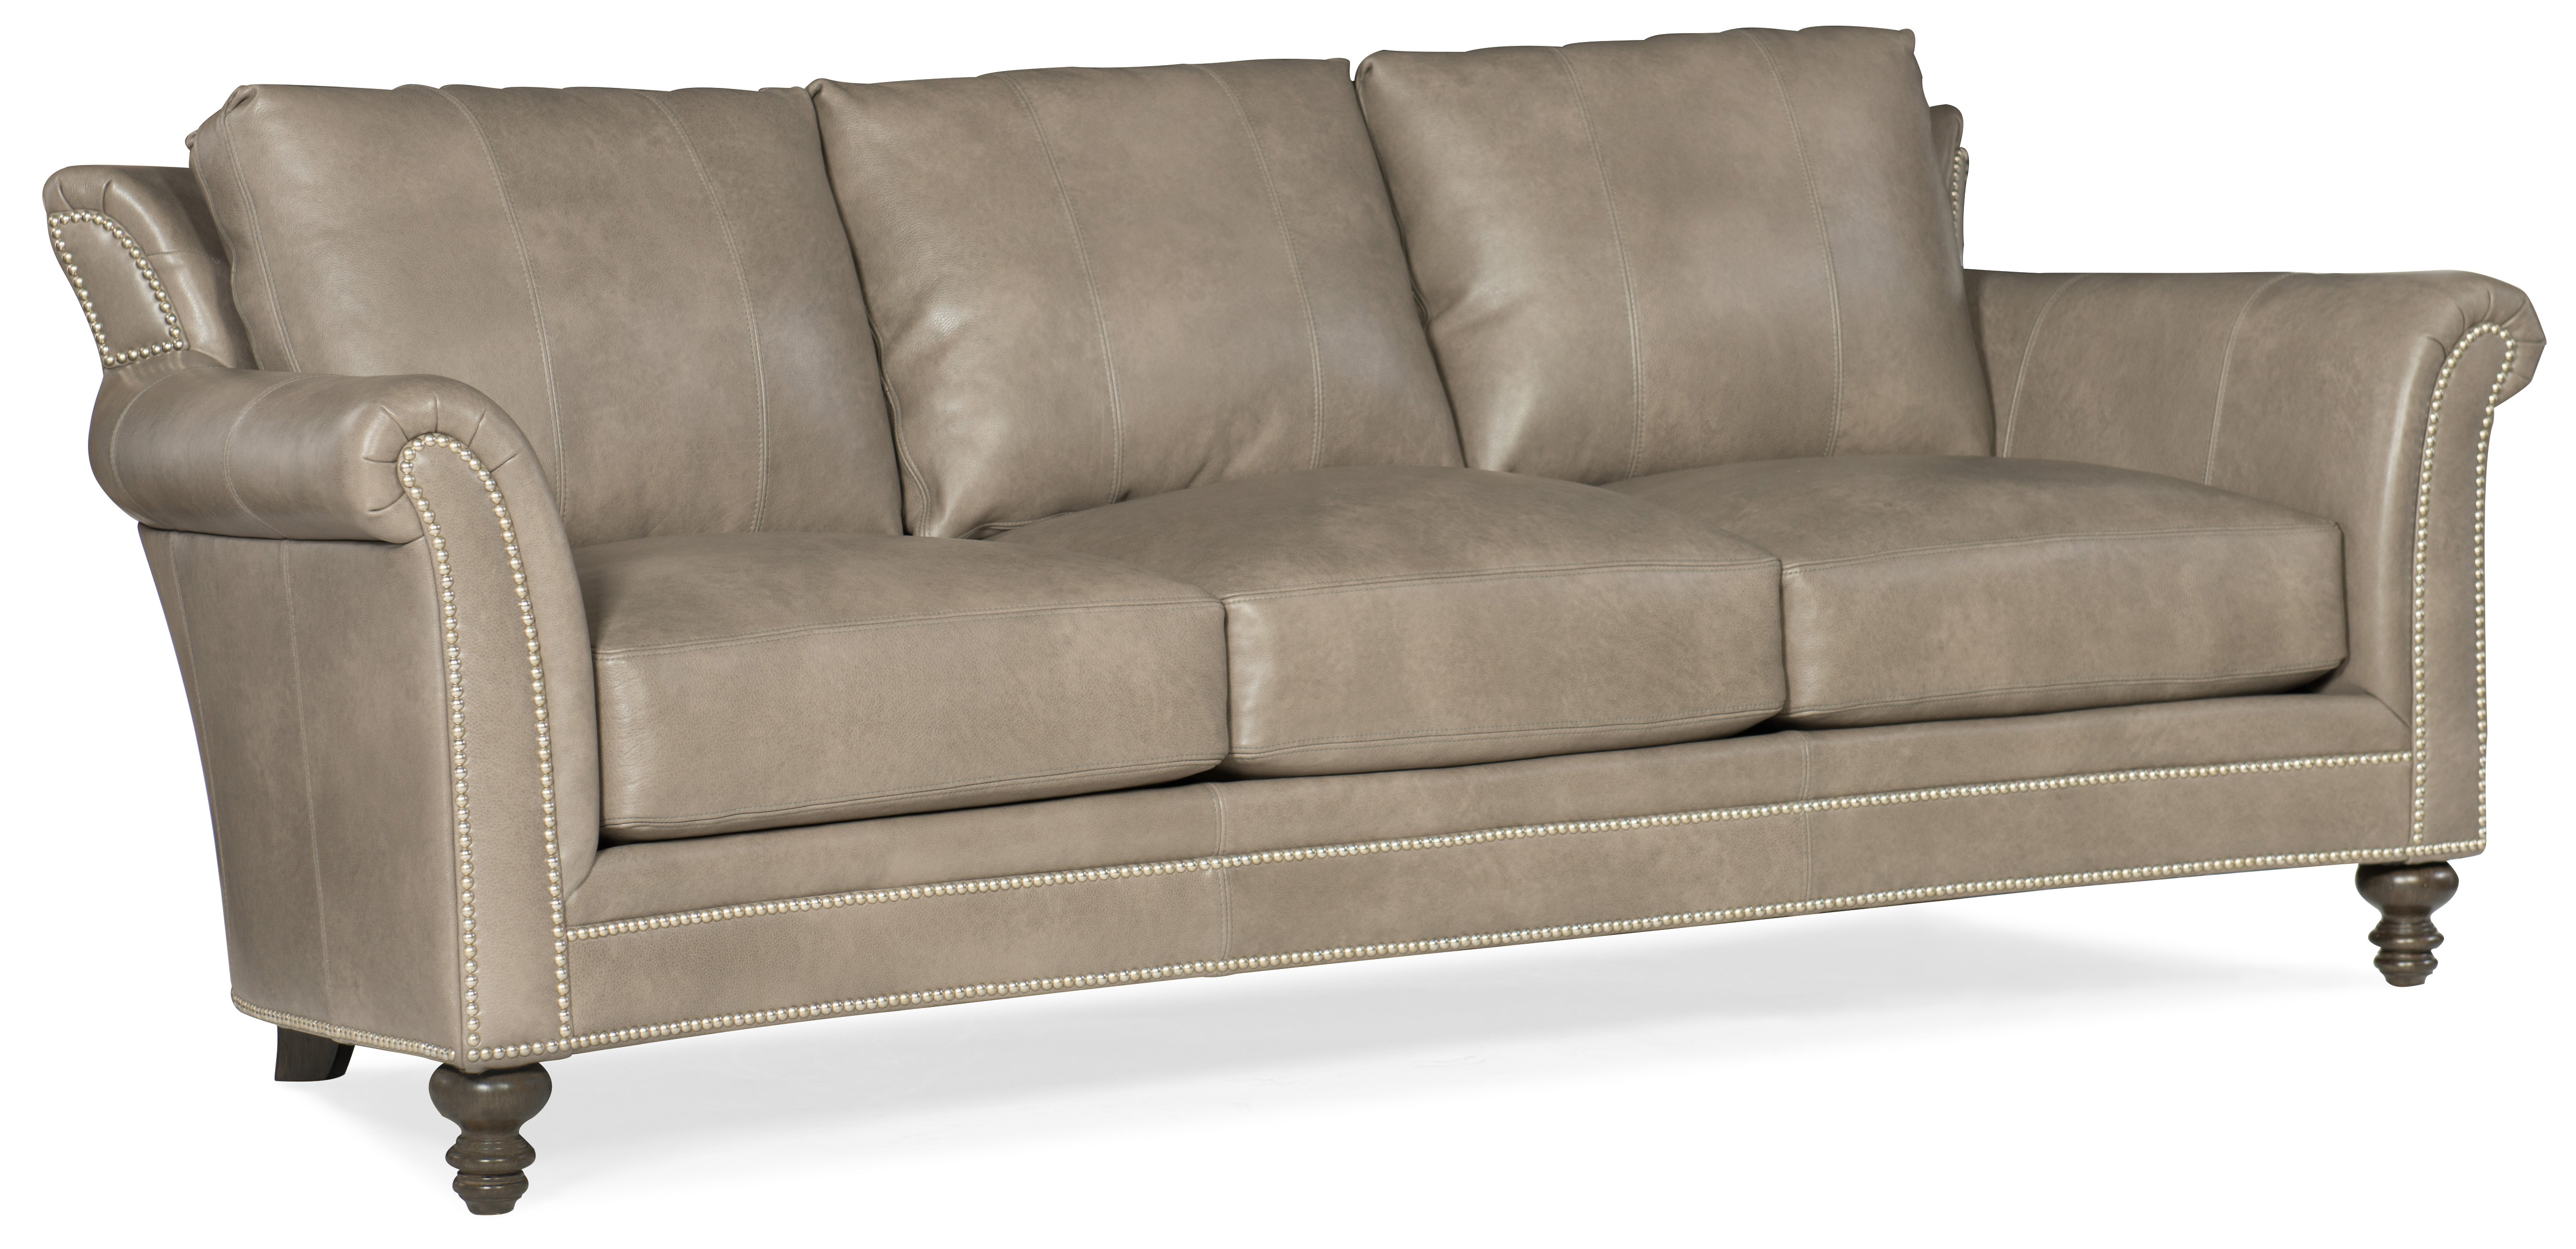 Pleasing Richardson Leather Sofa By Bradington Young Andrewgaddart Wooden Chair Designs For Living Room Andrewgaddartcom